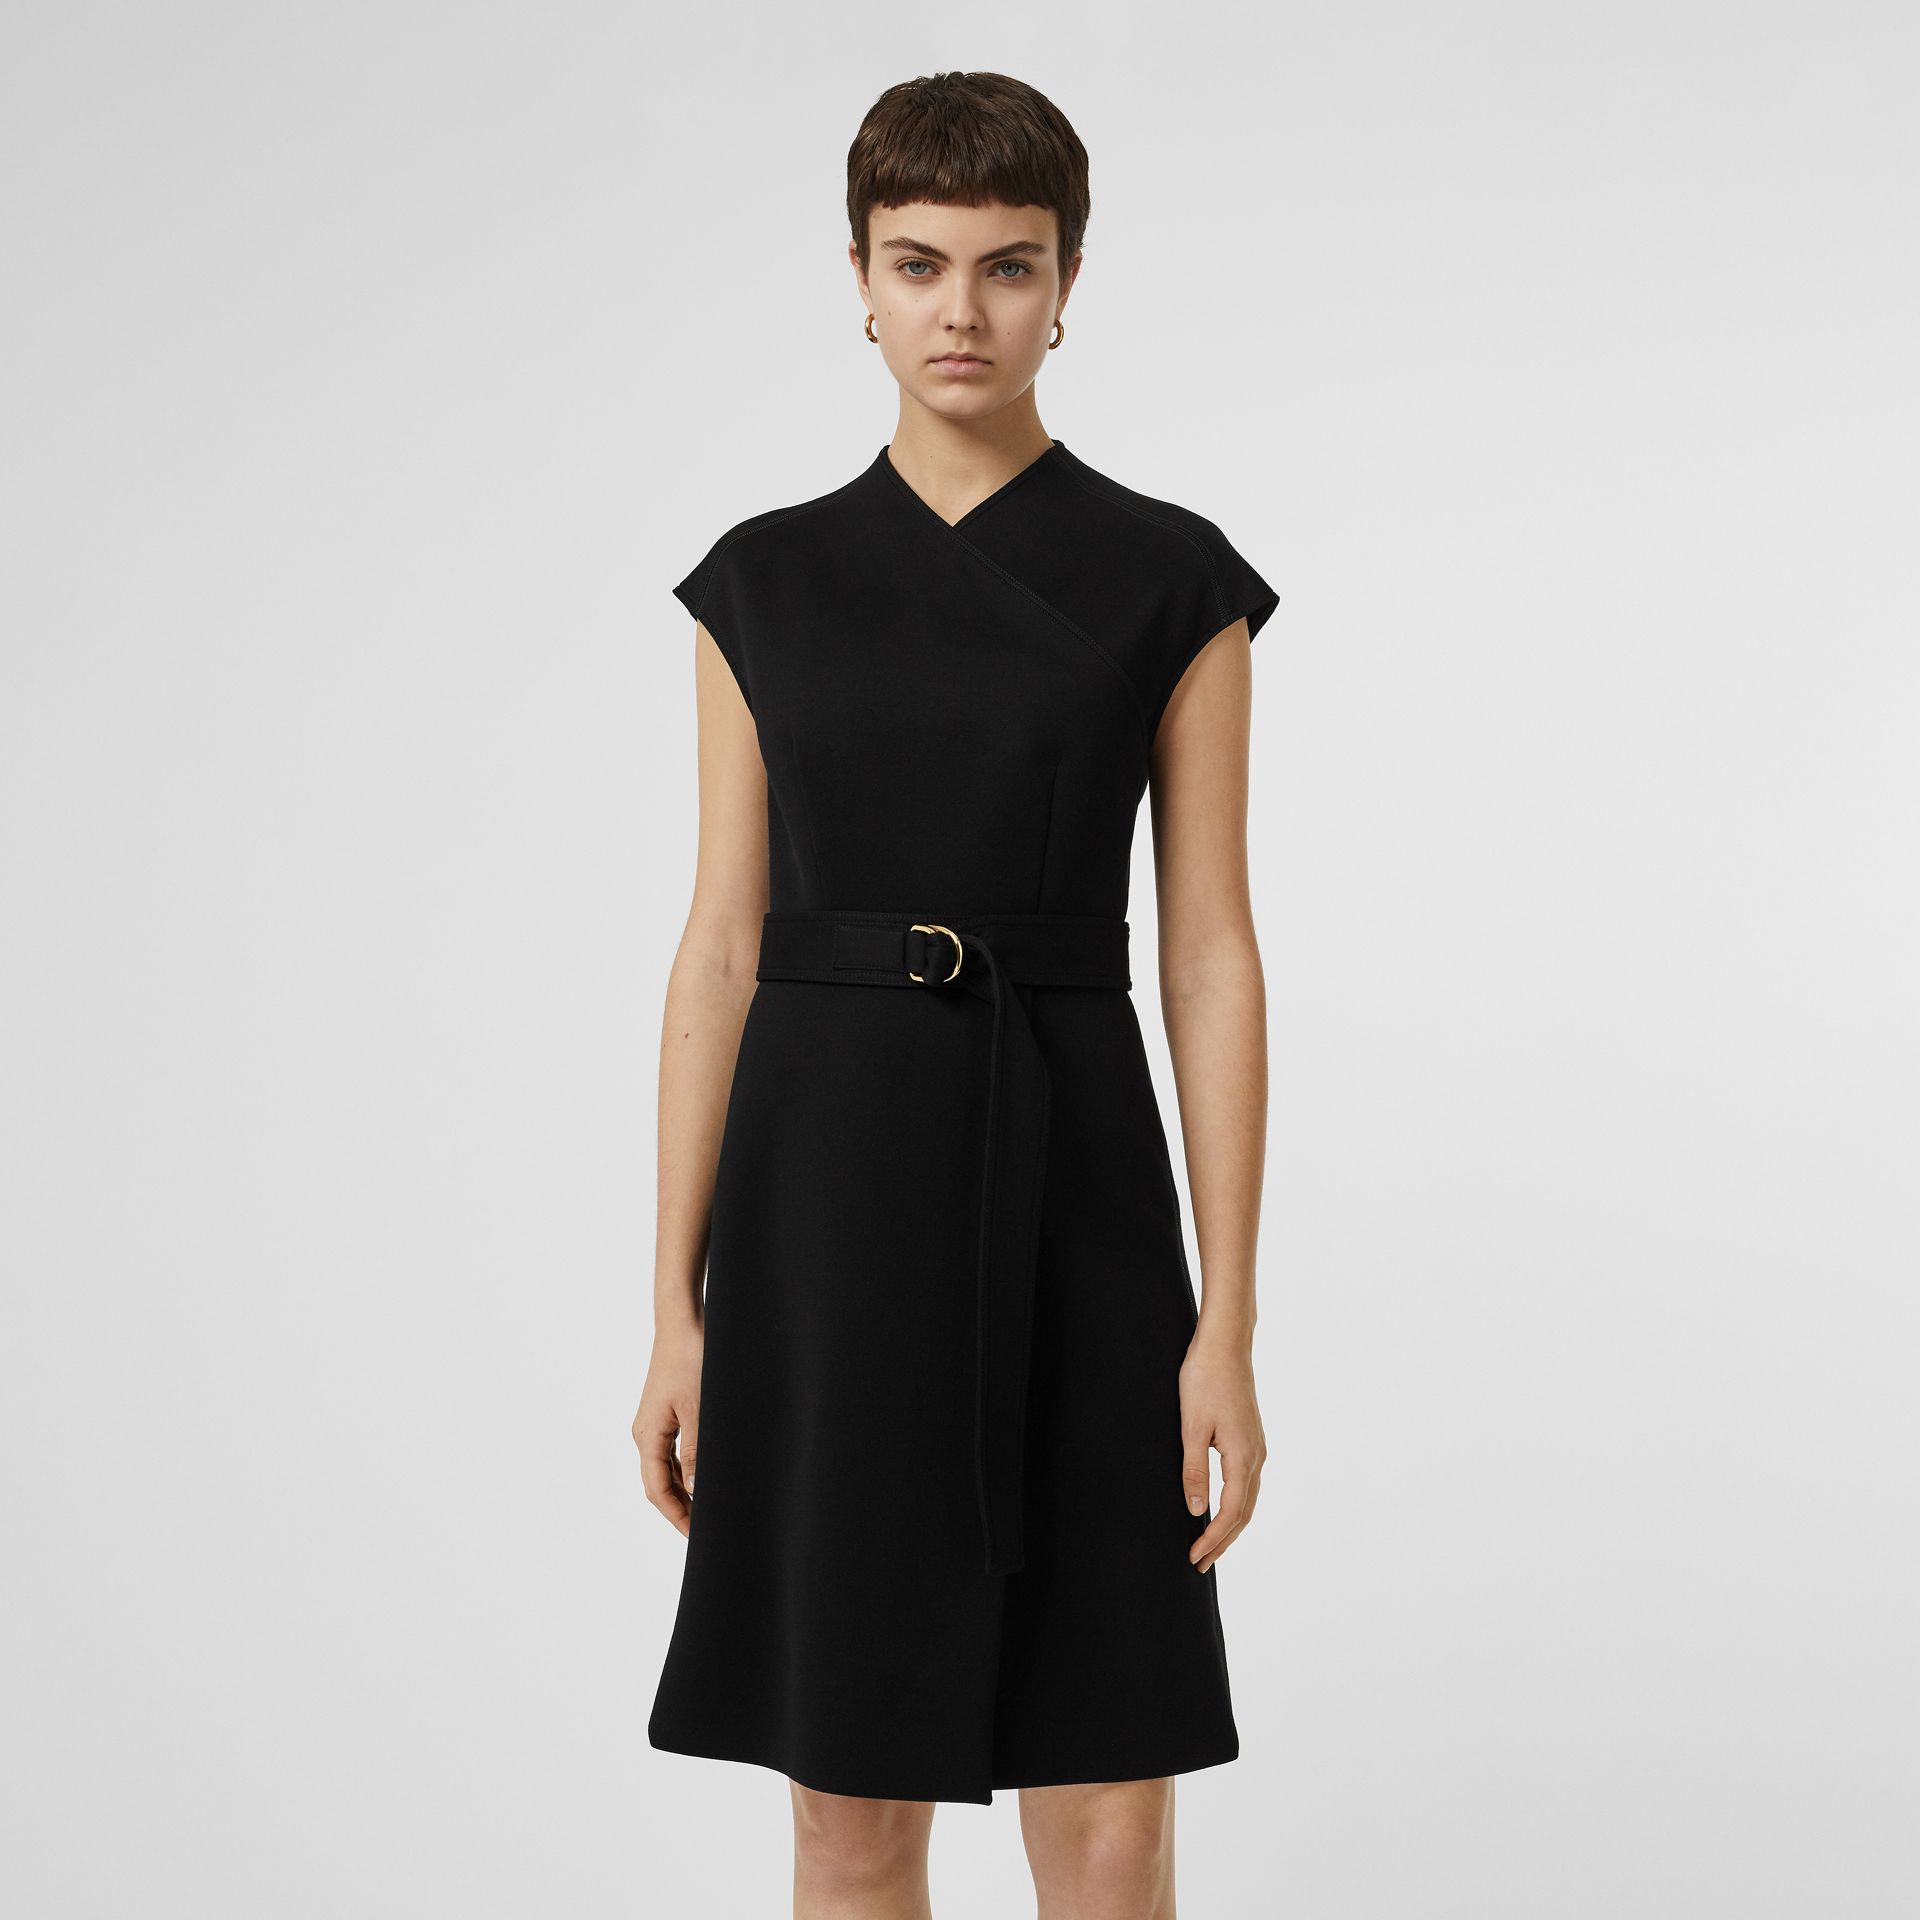 D-ring Detail Bonded Jersey Dress in Black - Women | Burberry Australia - gallery image 5